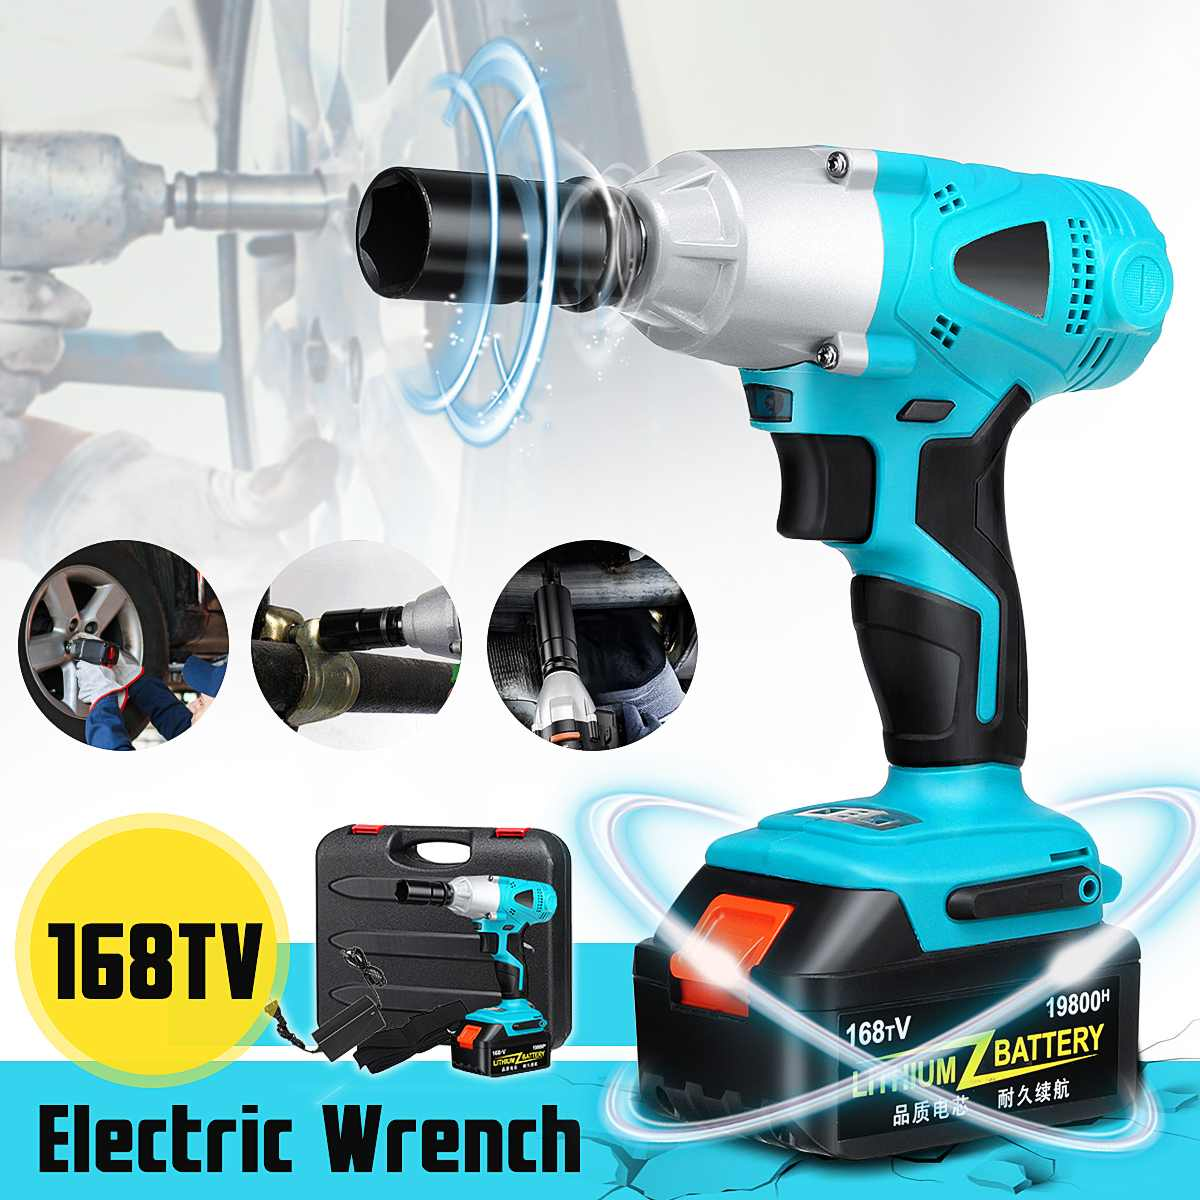 168TV Impact Wrench Drill LED Light 1/2 Socket 19800mAh Li-on Battery Electric Wrench Car Wheel Power Tools168TV Impact Wrench Drill LED Light 1/2 Socket 19800mAh Li-on Battery Electric Wrench Car Wheel Power Tools